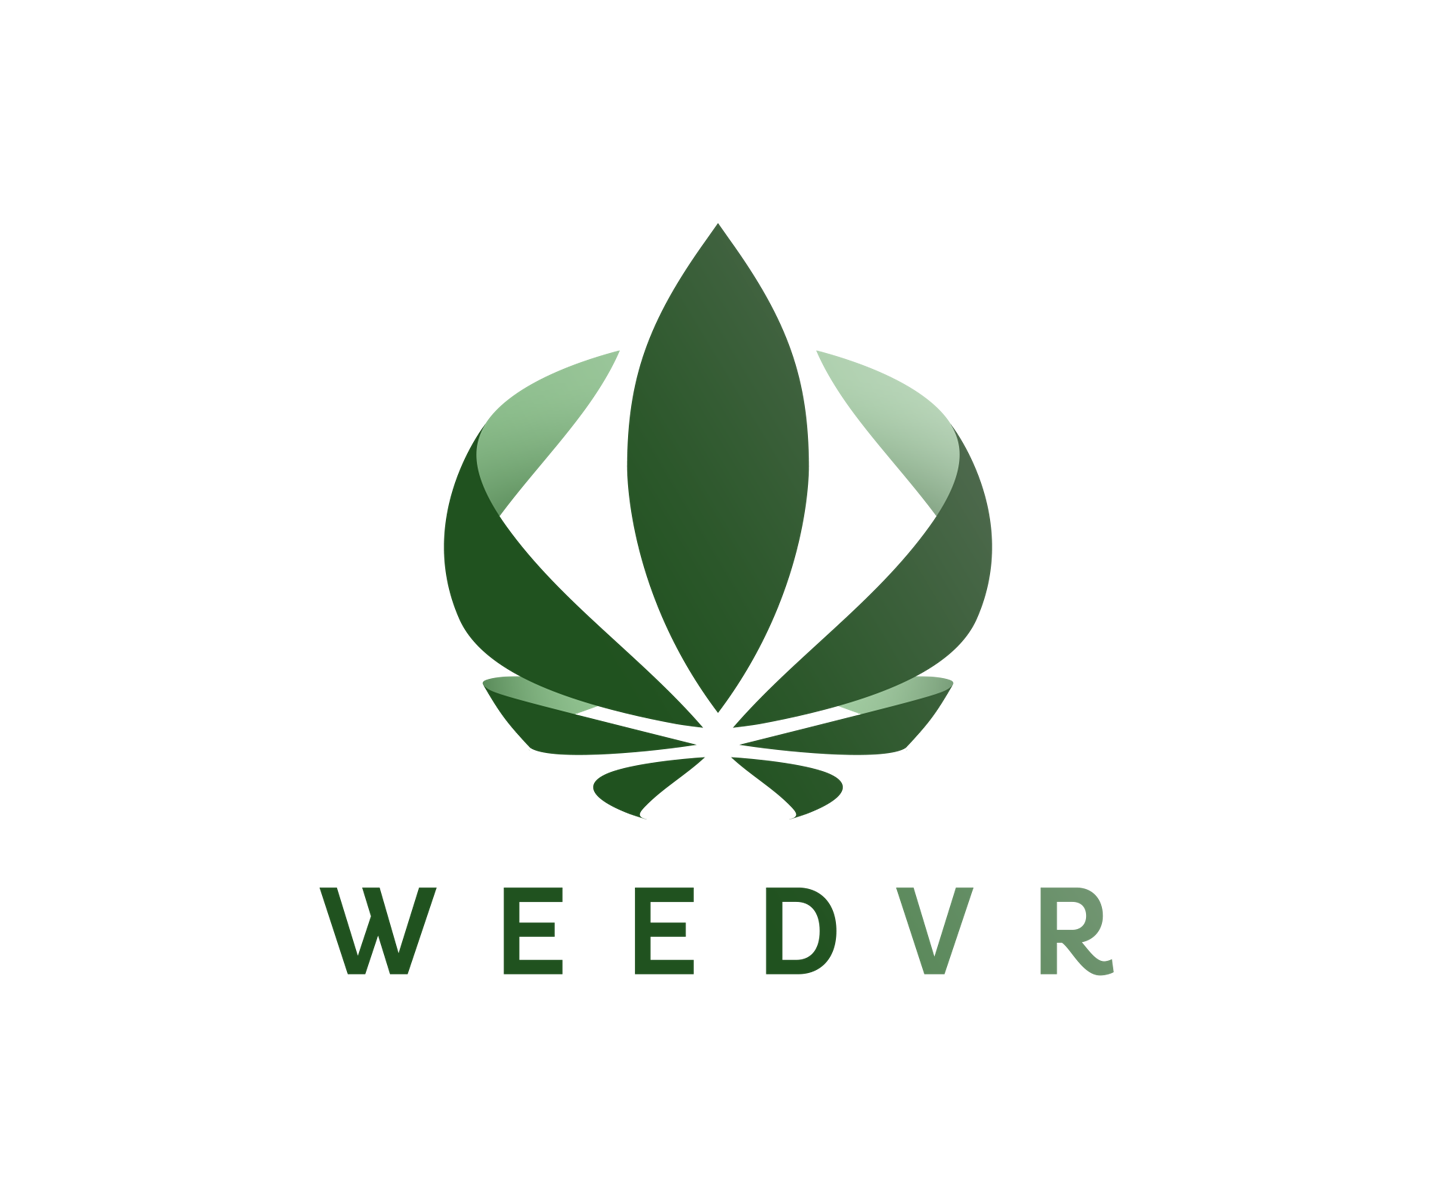 Weed falling png. Vr future tech today